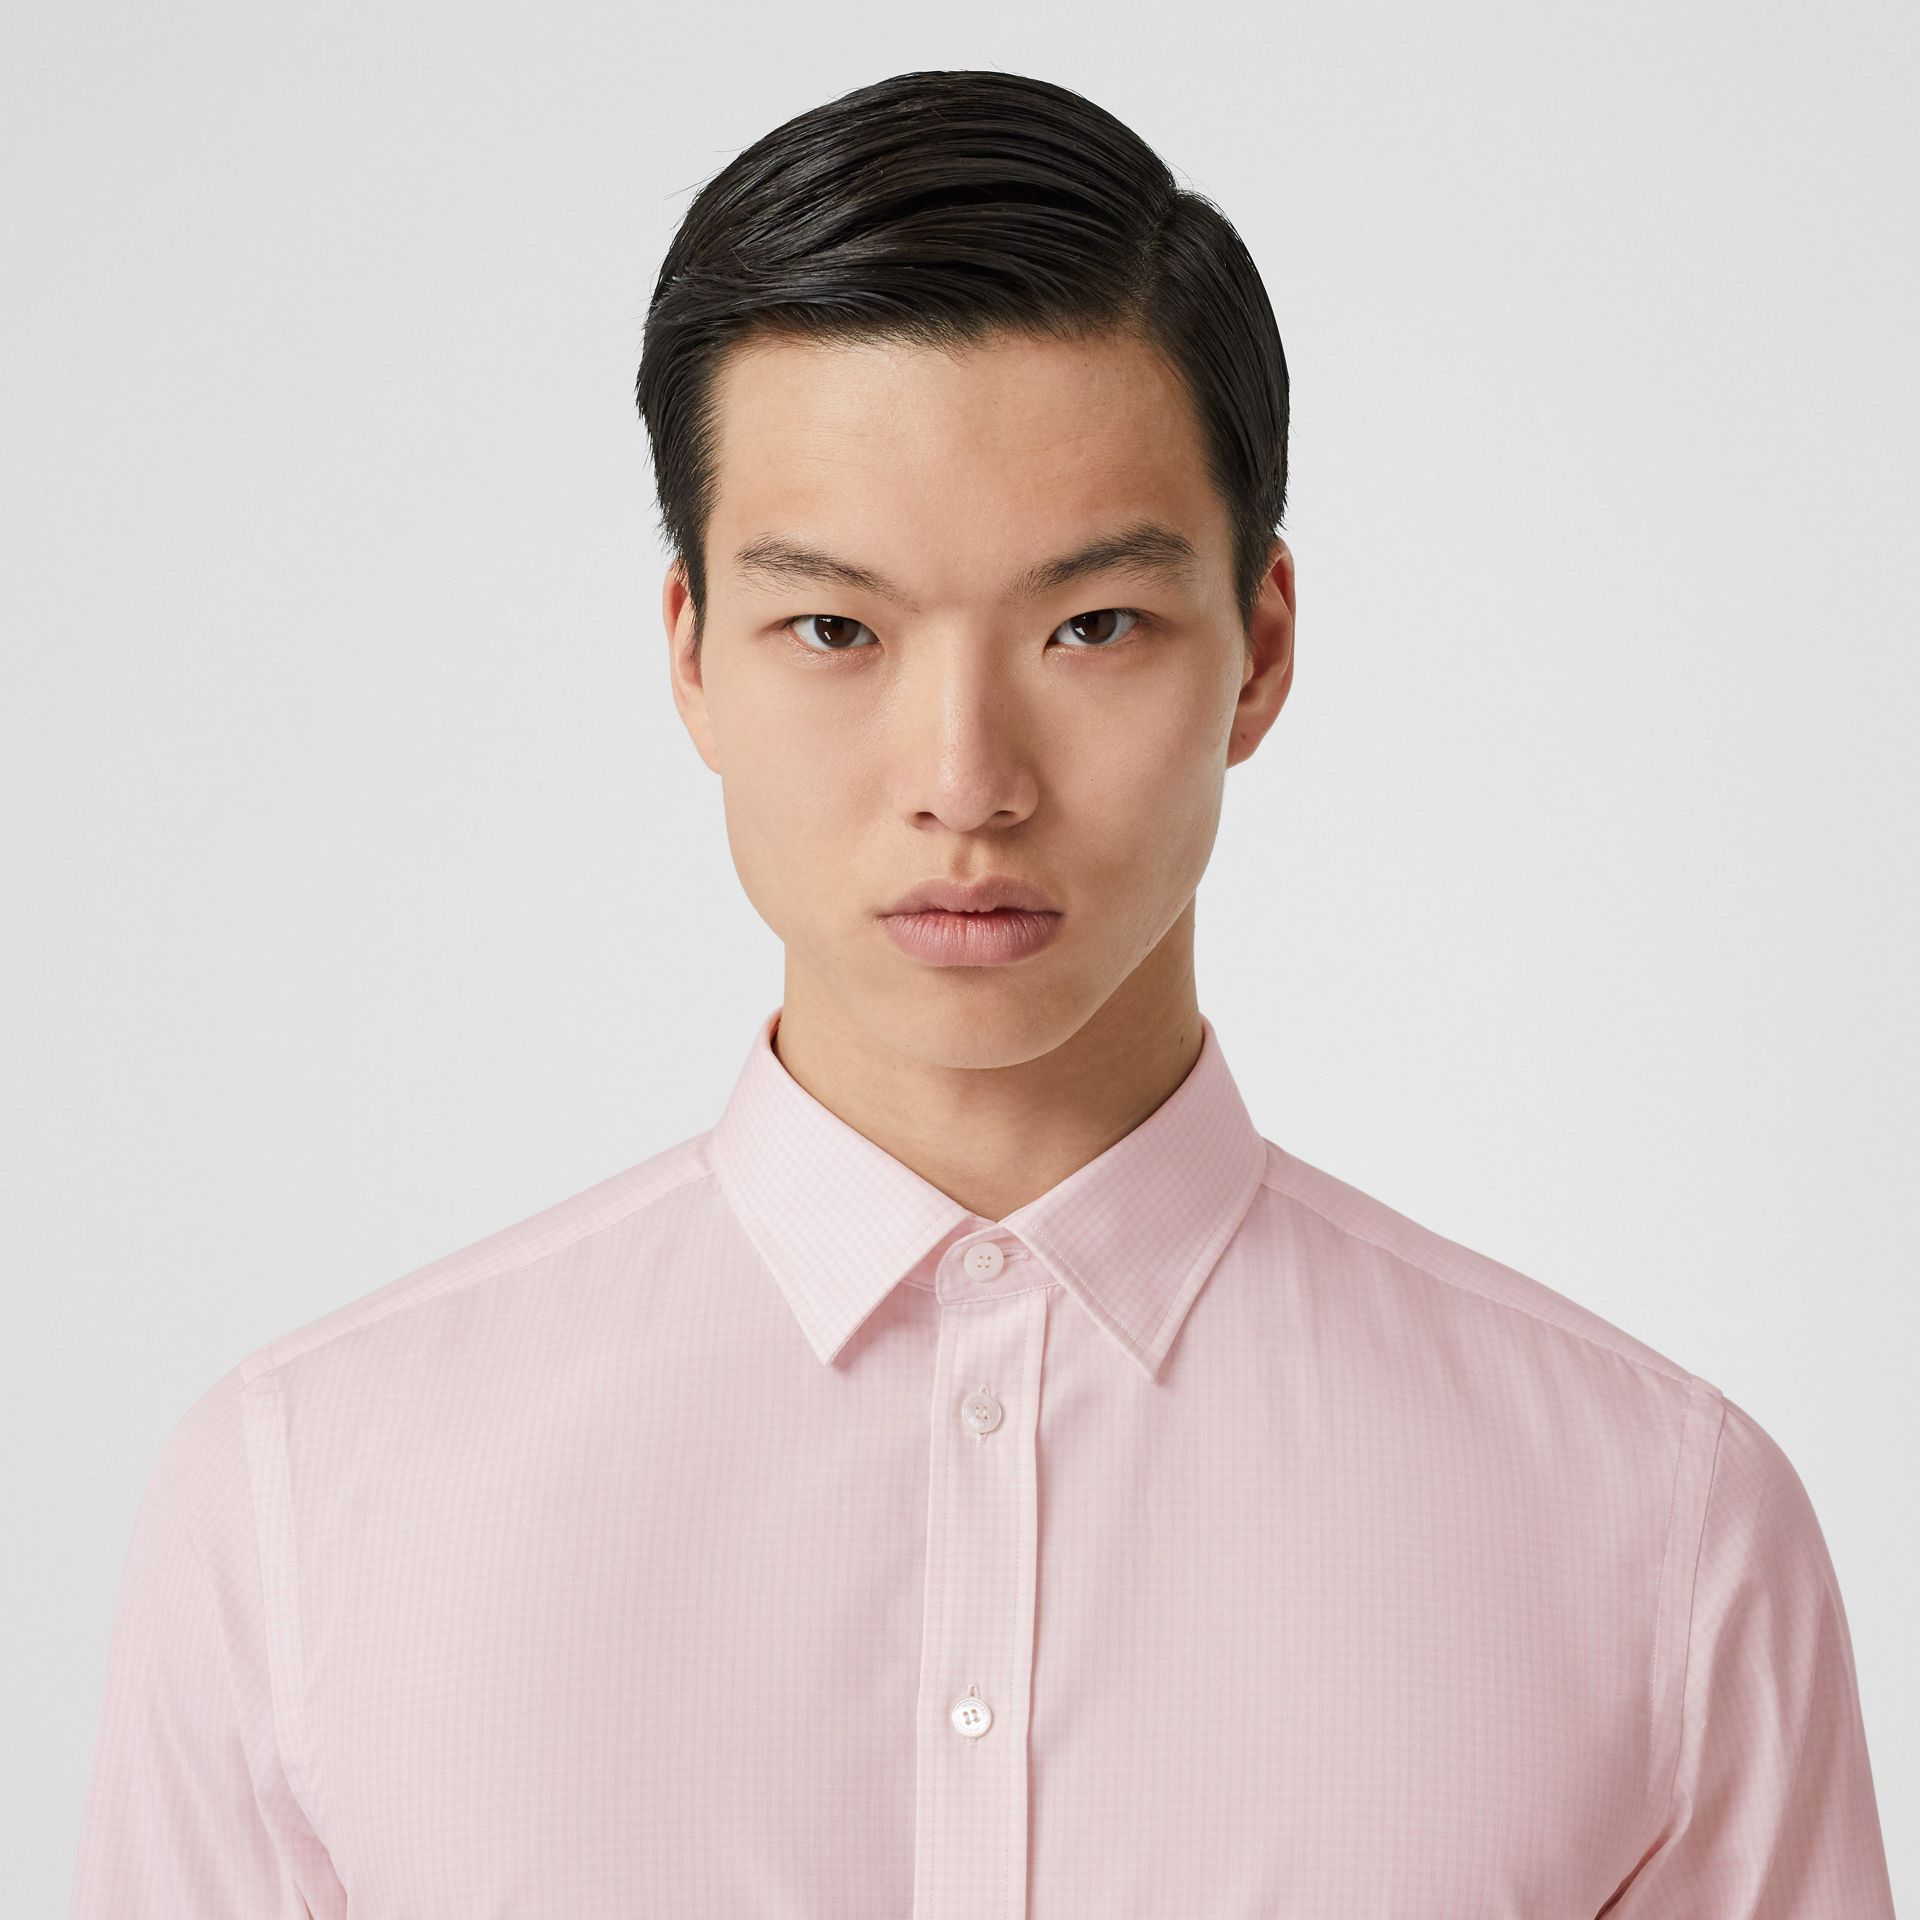 Slim Fit Micro Check Cotton Poplin Shirt in Alabaster Pink - Men | Burberry - gallery image 1